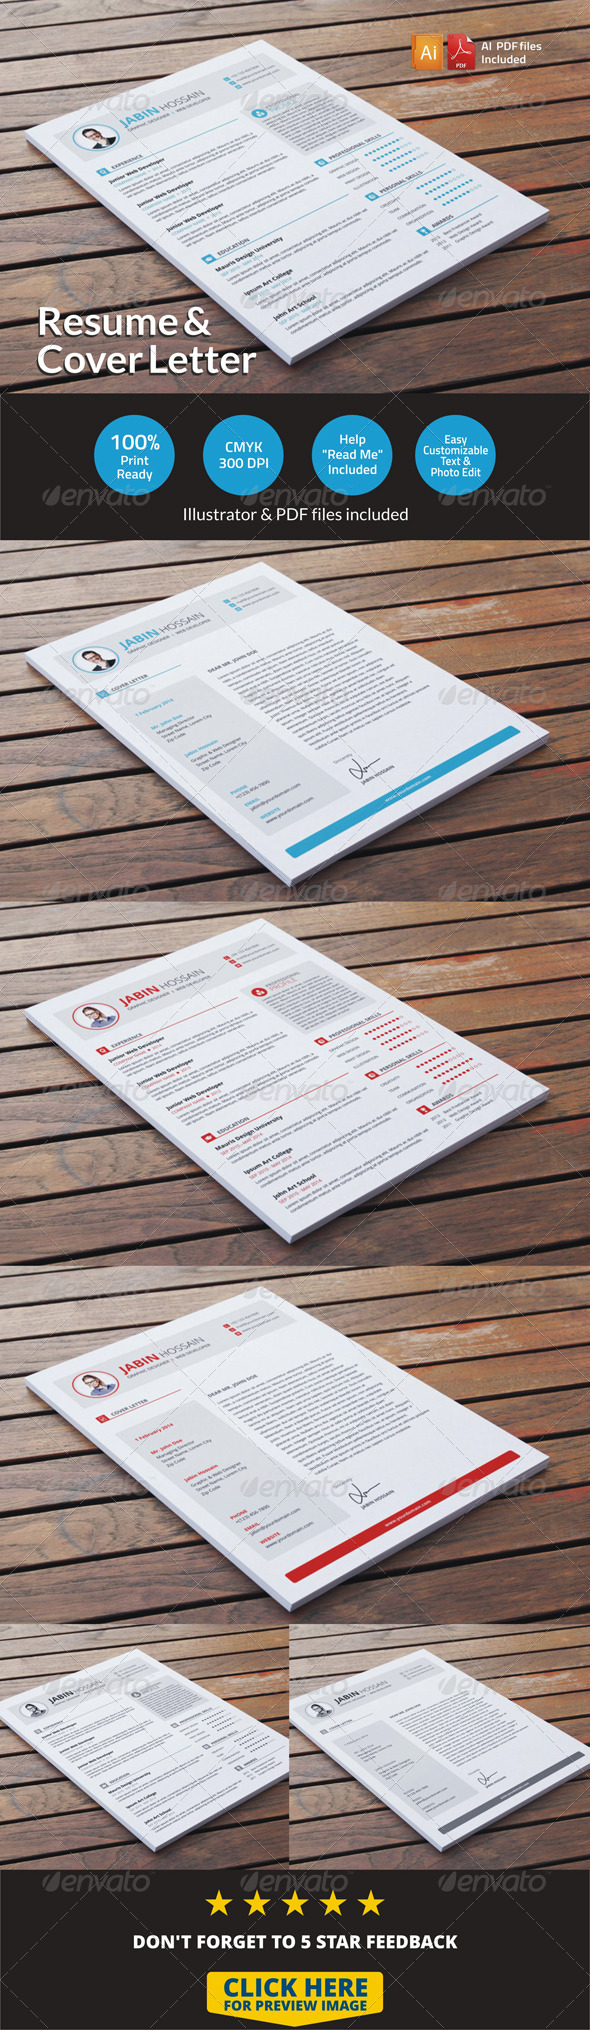 GraphicRiver Resume & Cover Letter 6735747